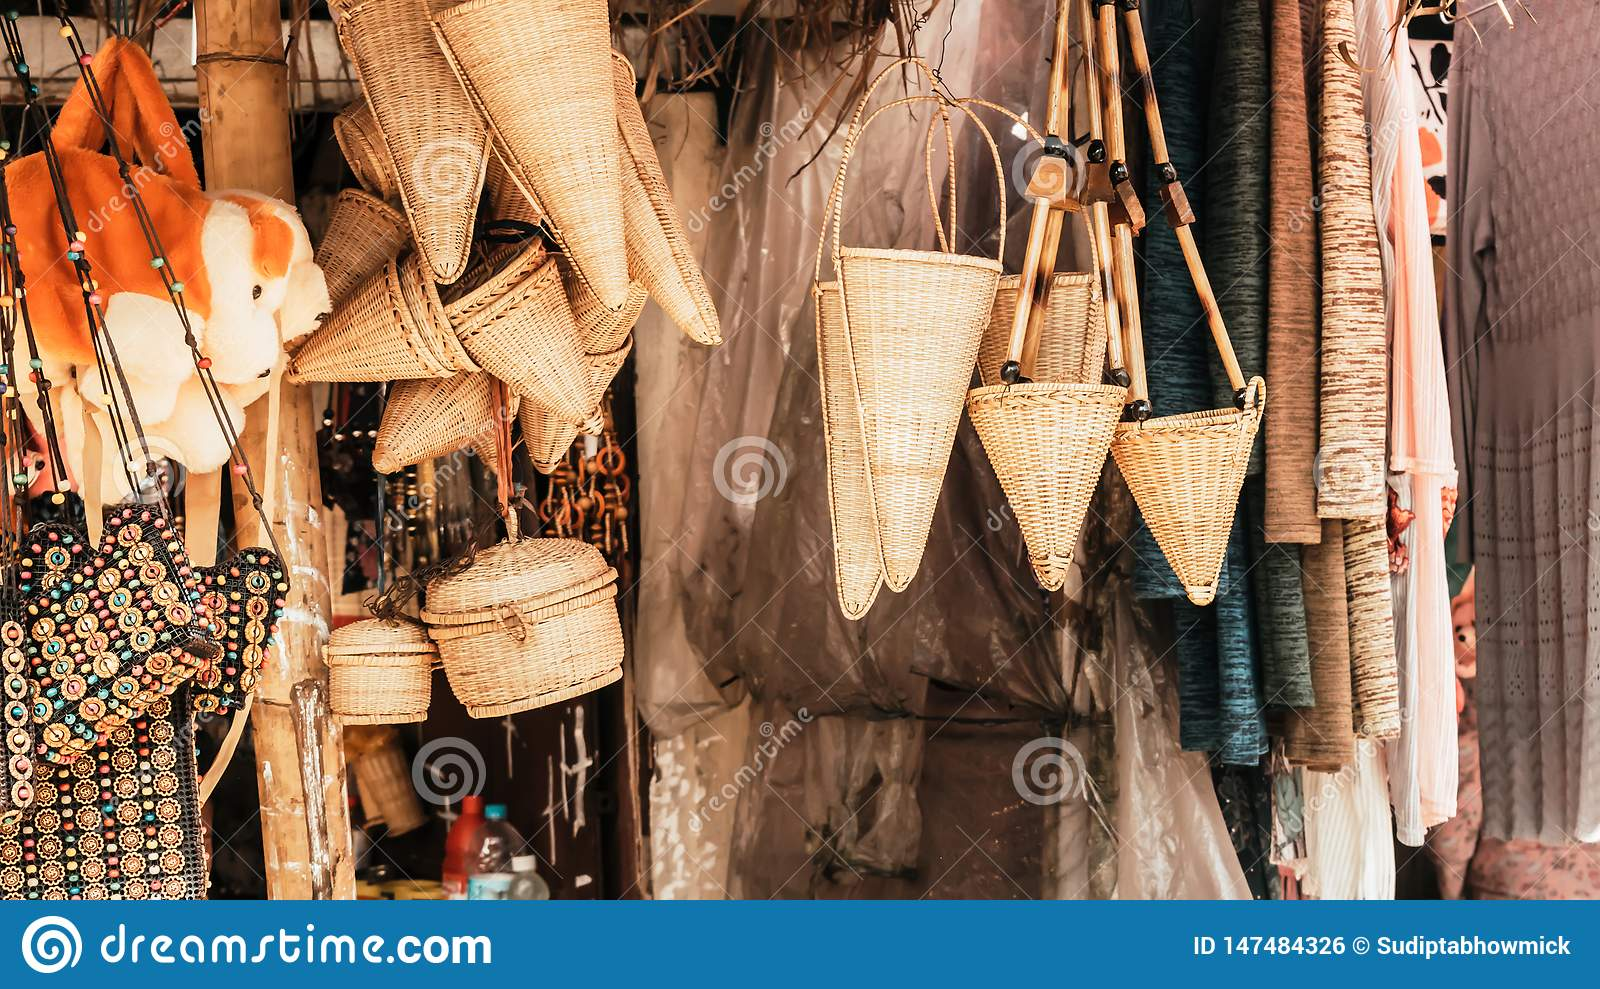 Meghalaya handicrafts art and crafts made with cane and bamboo products. Bamboo Cane work, Stools, Baskets, fishing traps,